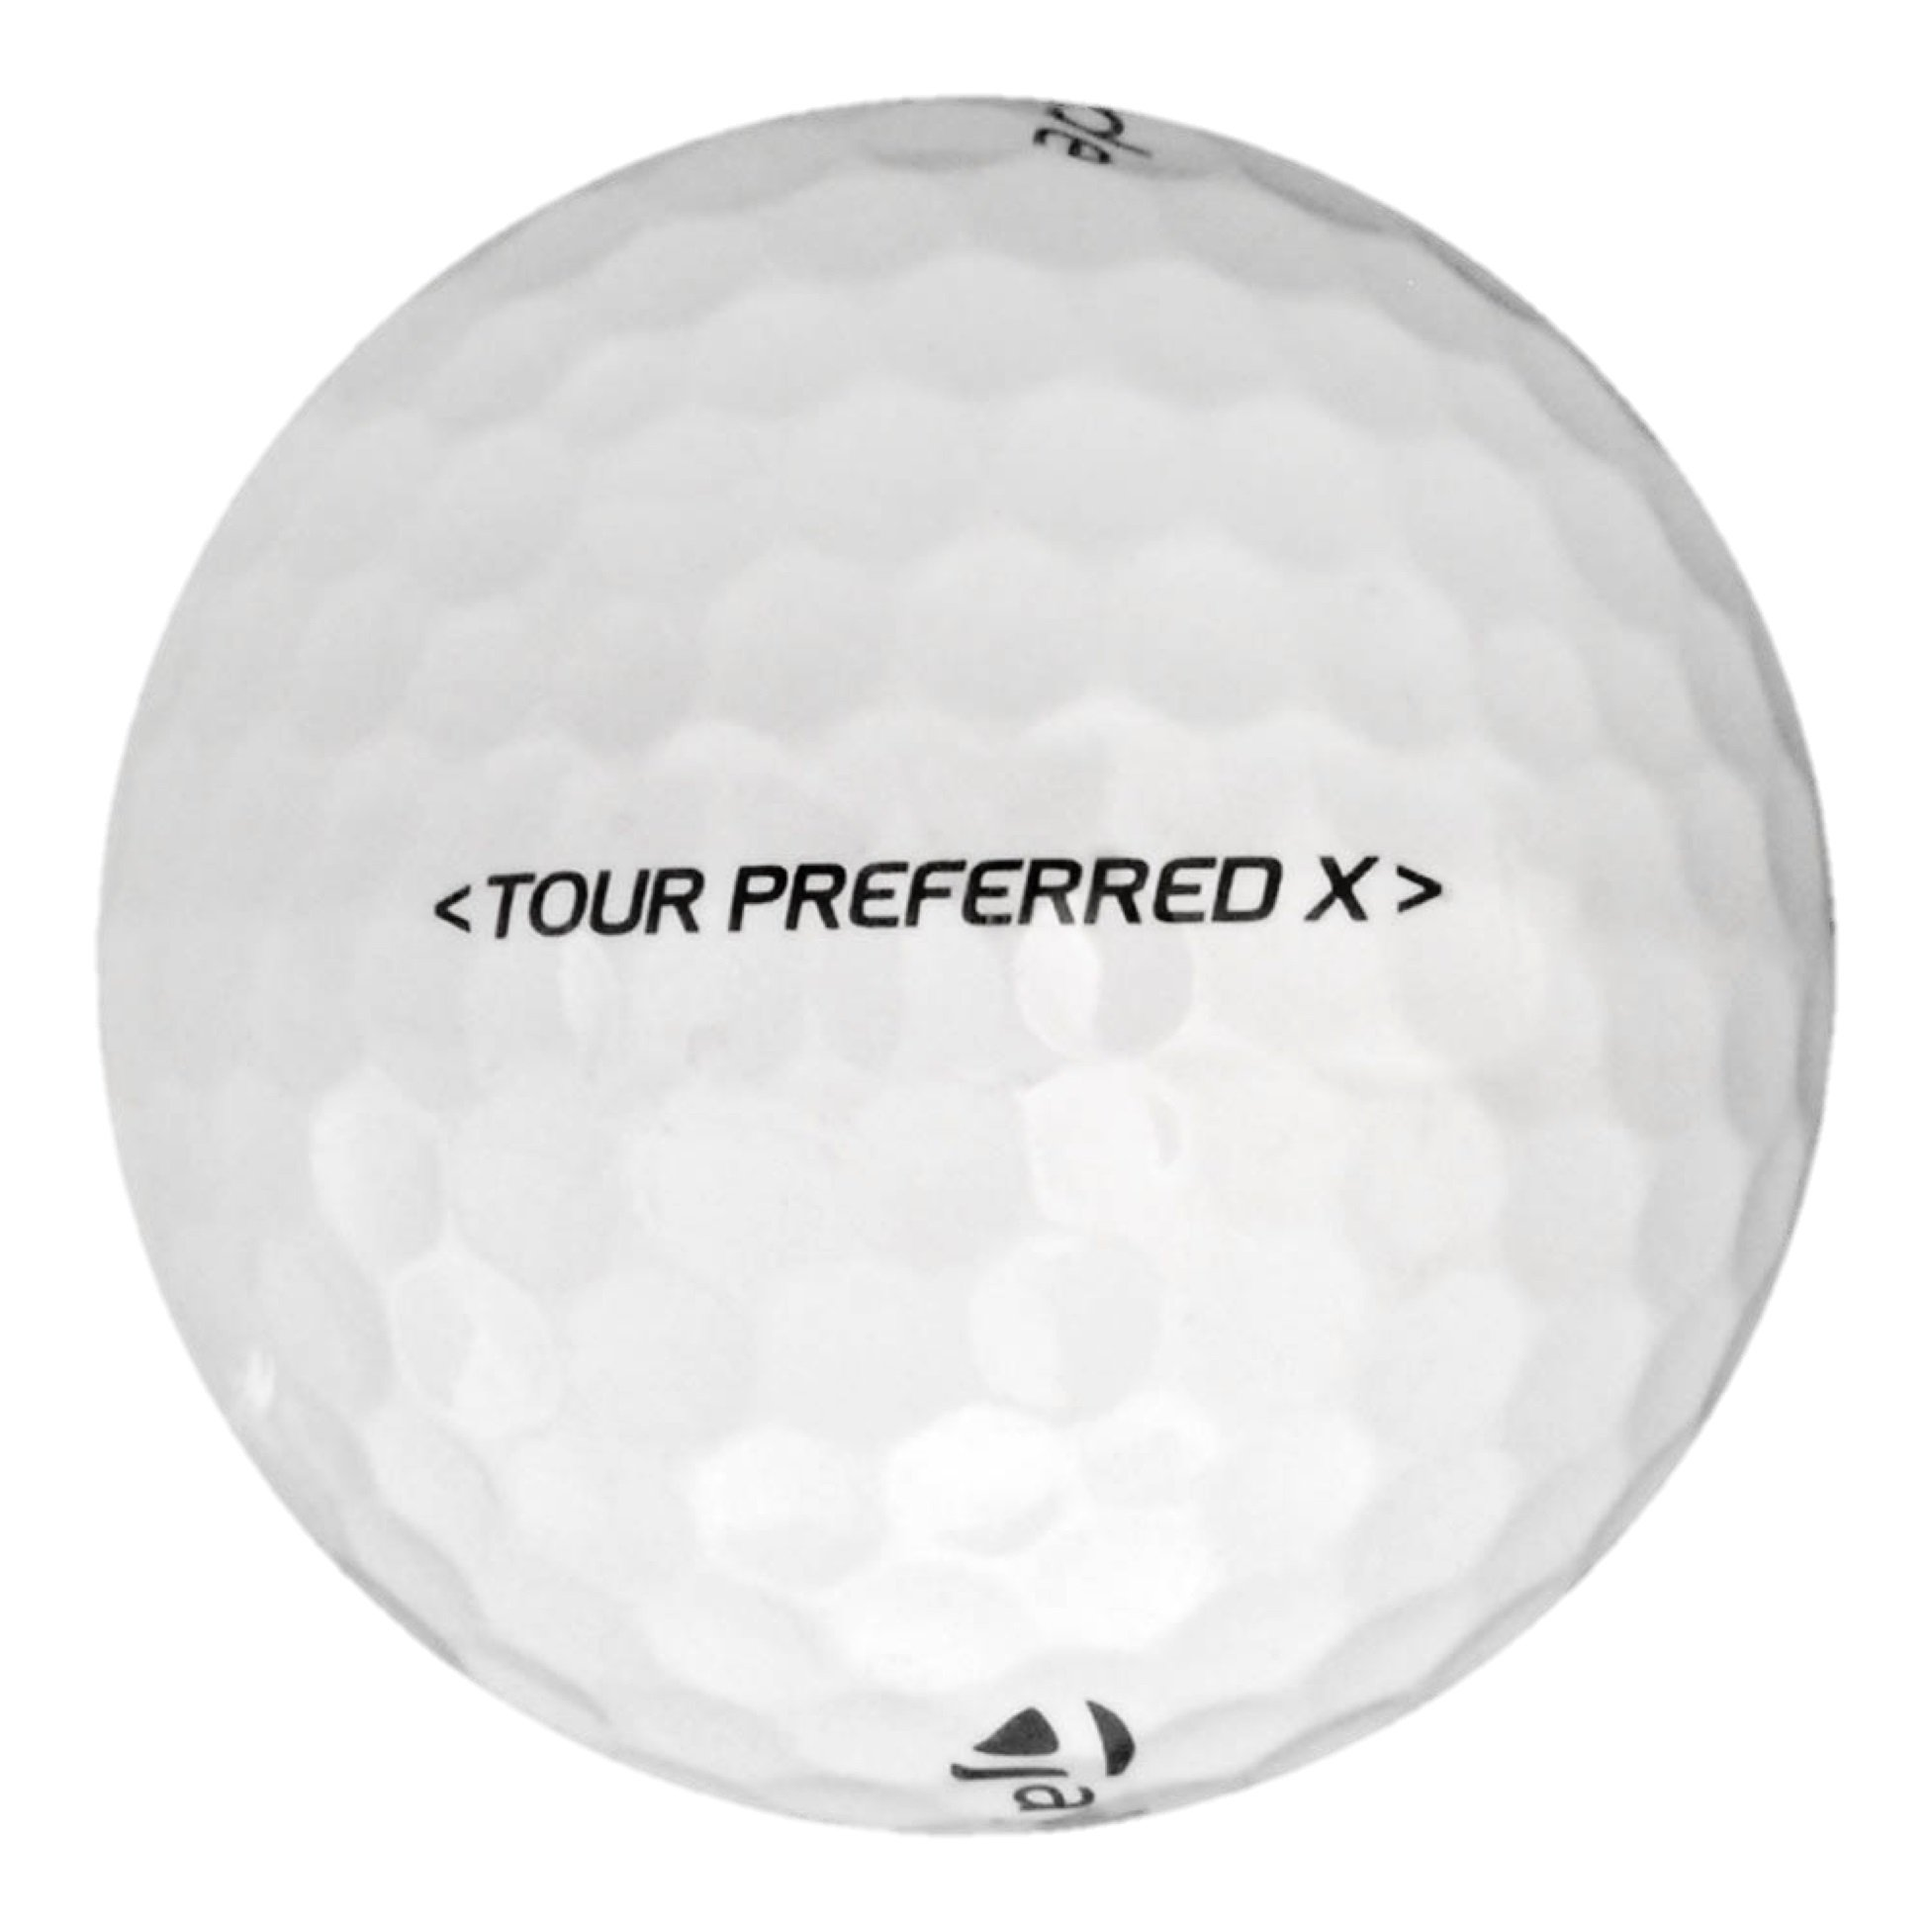 108 TaylorMade Tour Preferred X - Value (AAA) Grade - Recycled (Used) Golf Balls by TaylorMade (Image #1)